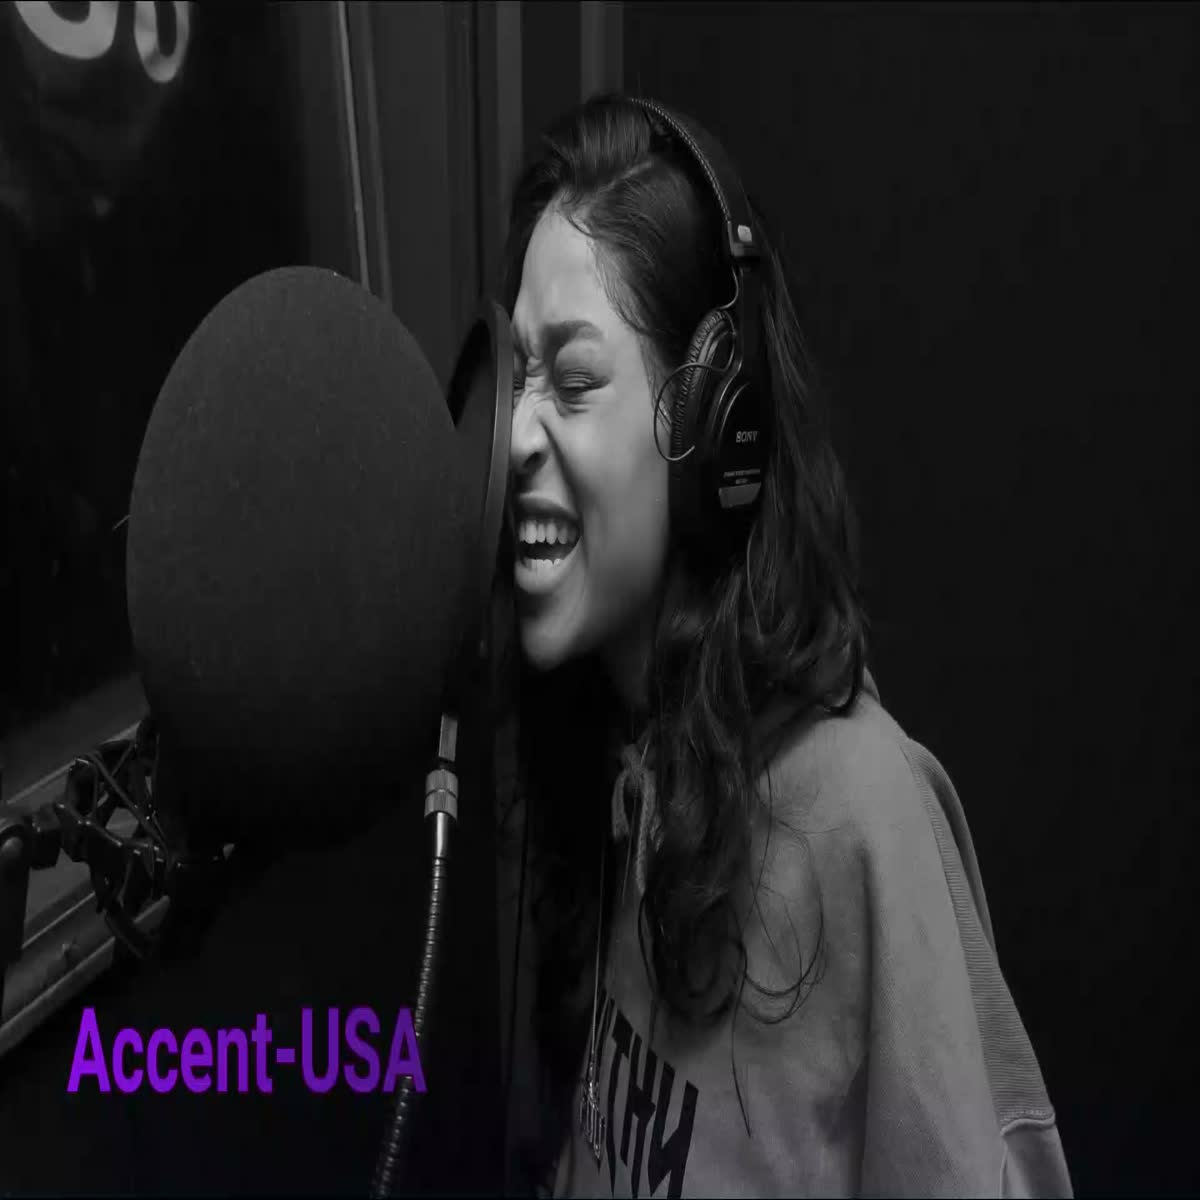 We Will Record British/American Voiceover for Your YouTube Videos